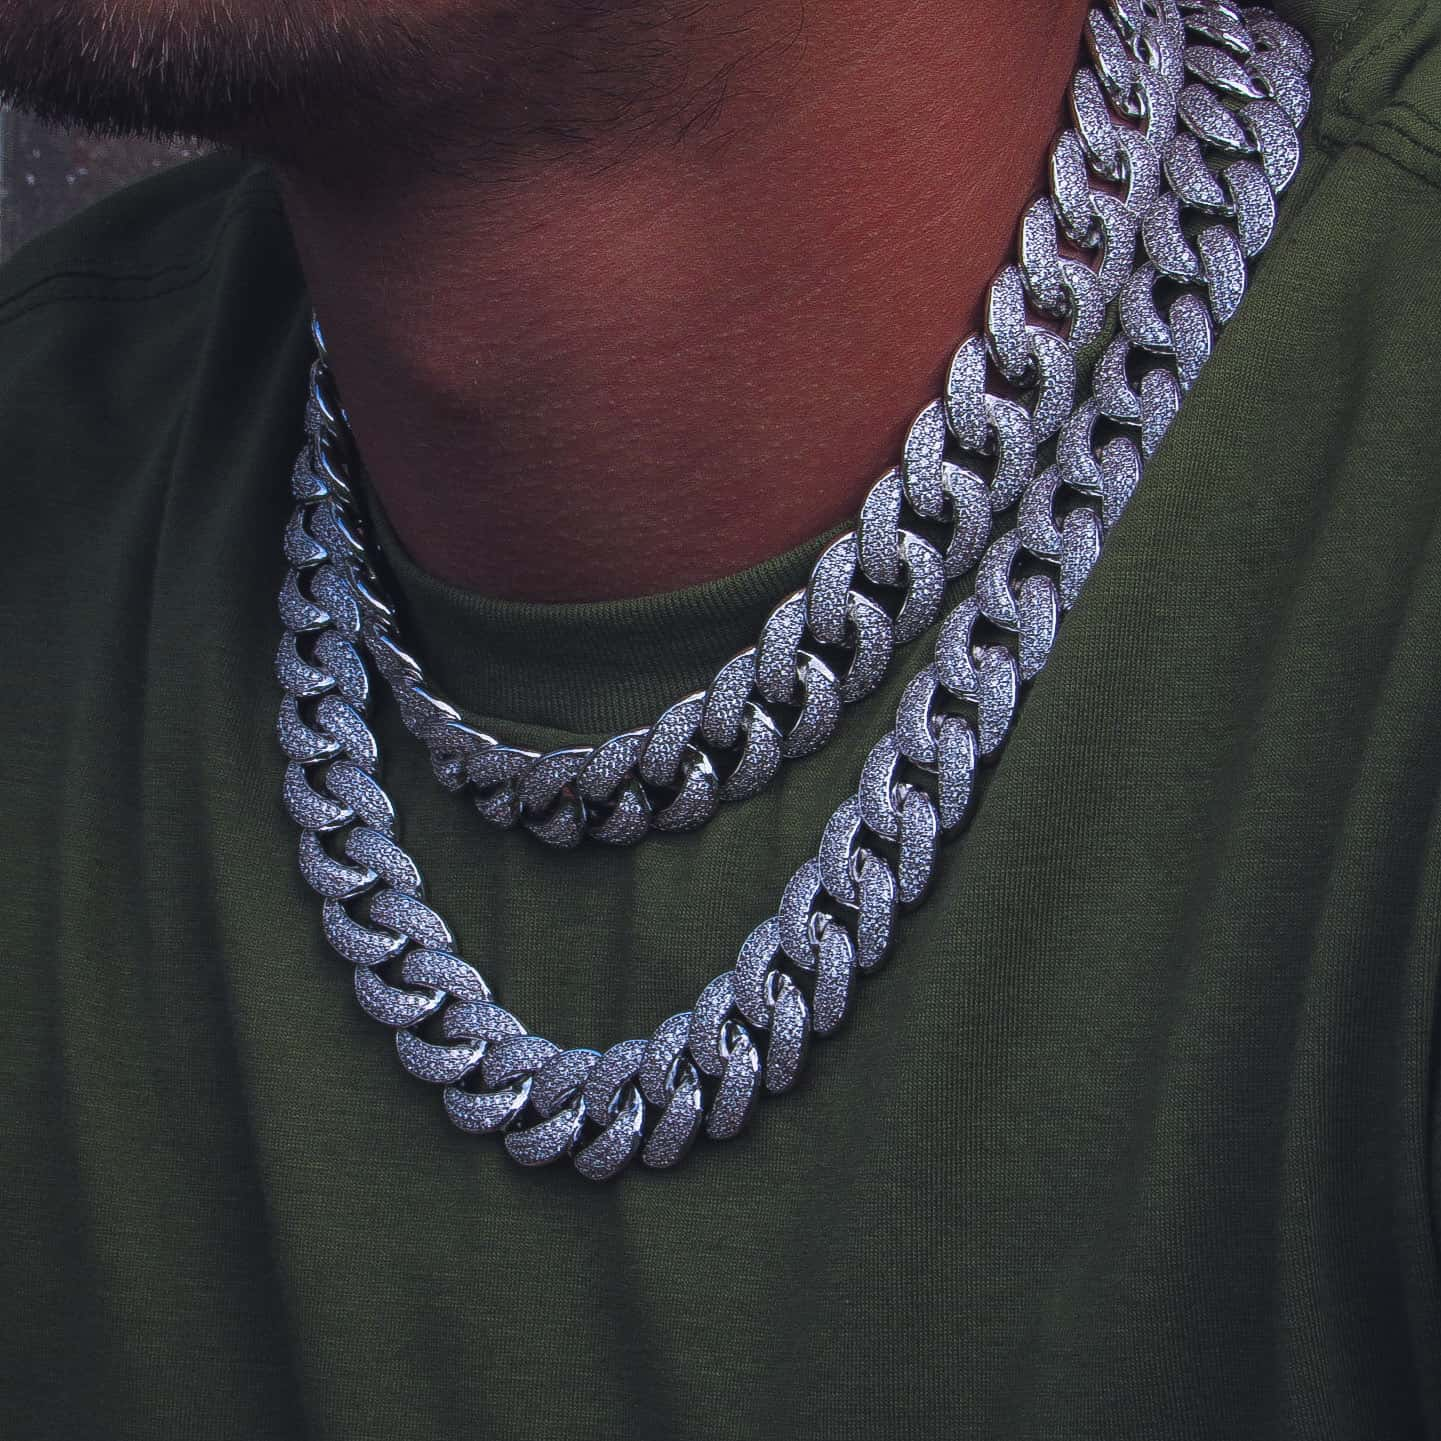 19mm Three Row Cuban Link Chain White Gold - IcedGold